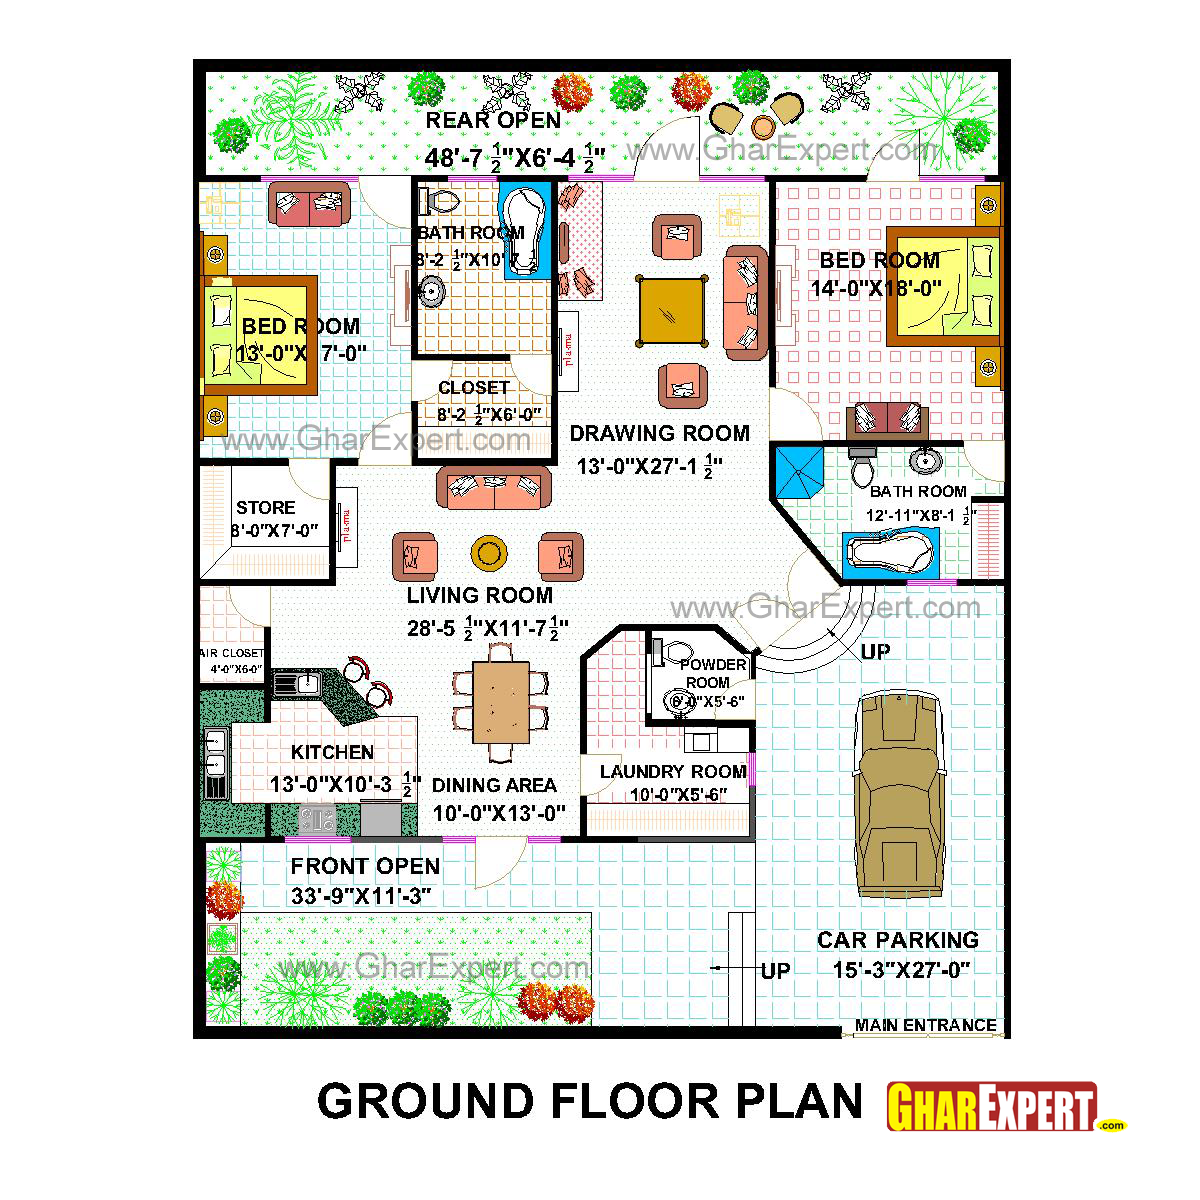 Pent house plan for 50 feet by 60 feet plot plot size 333 for What is a plot plan of a house